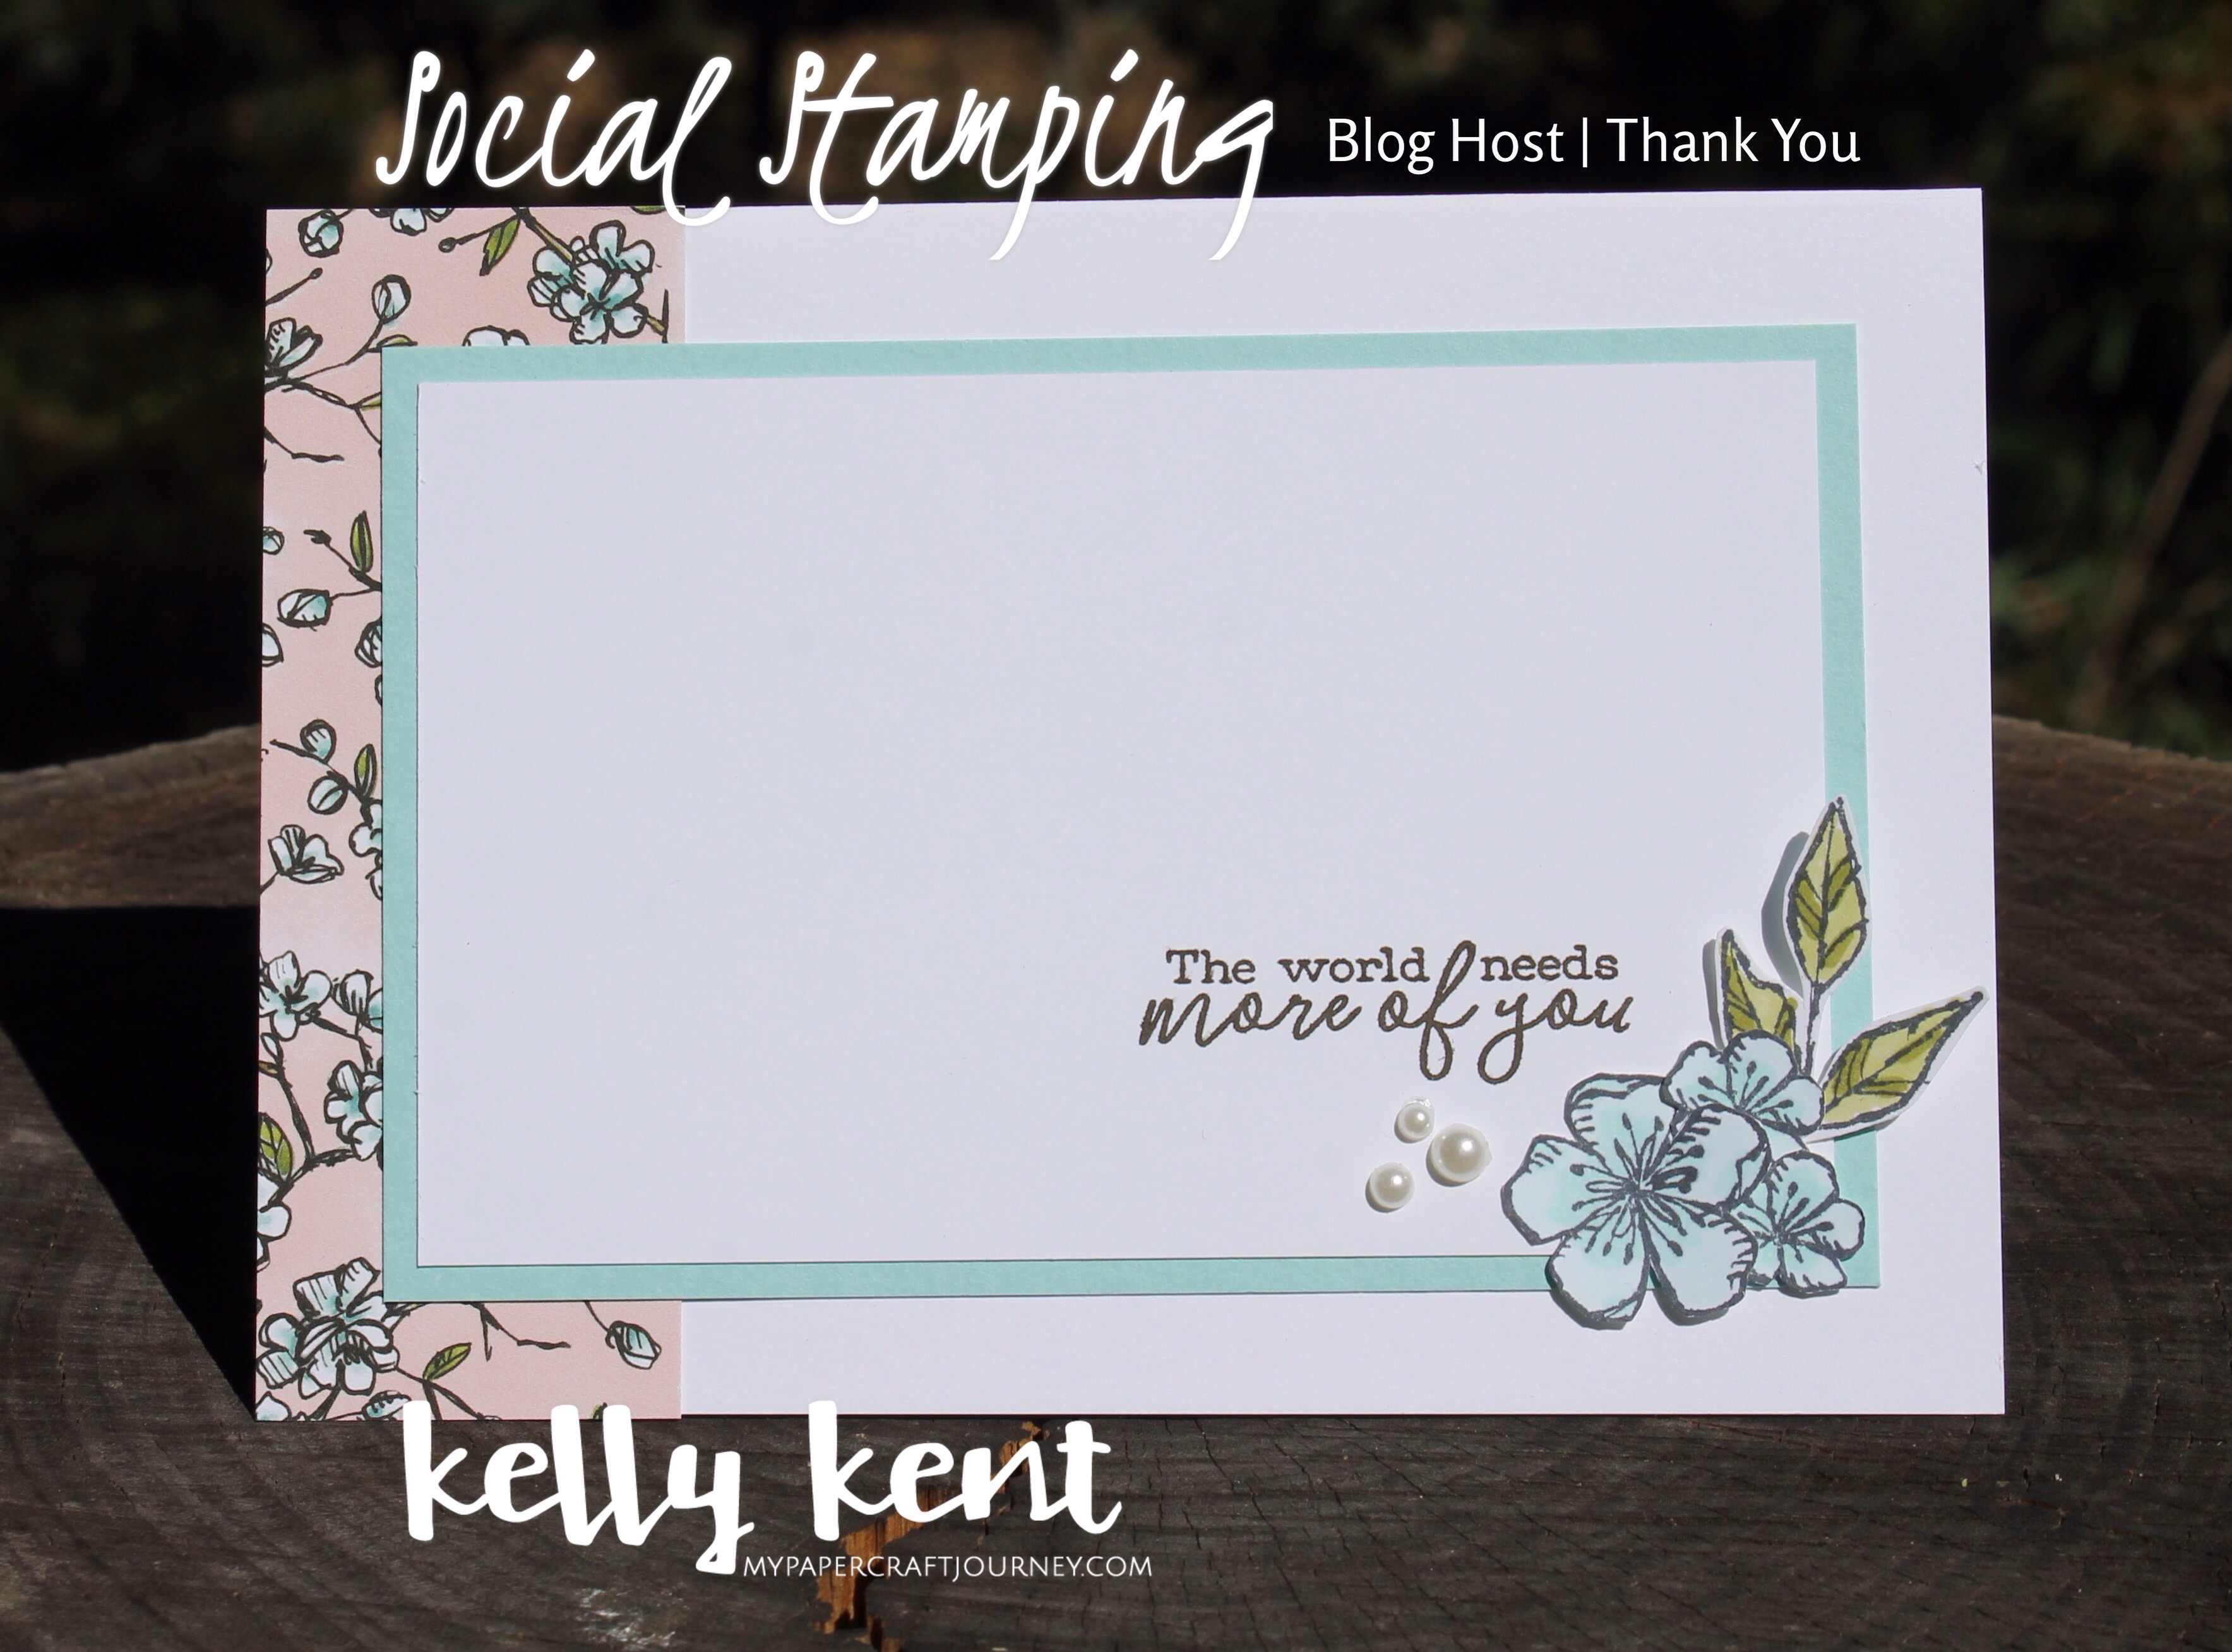 Social Stamping thank you | kelly kent